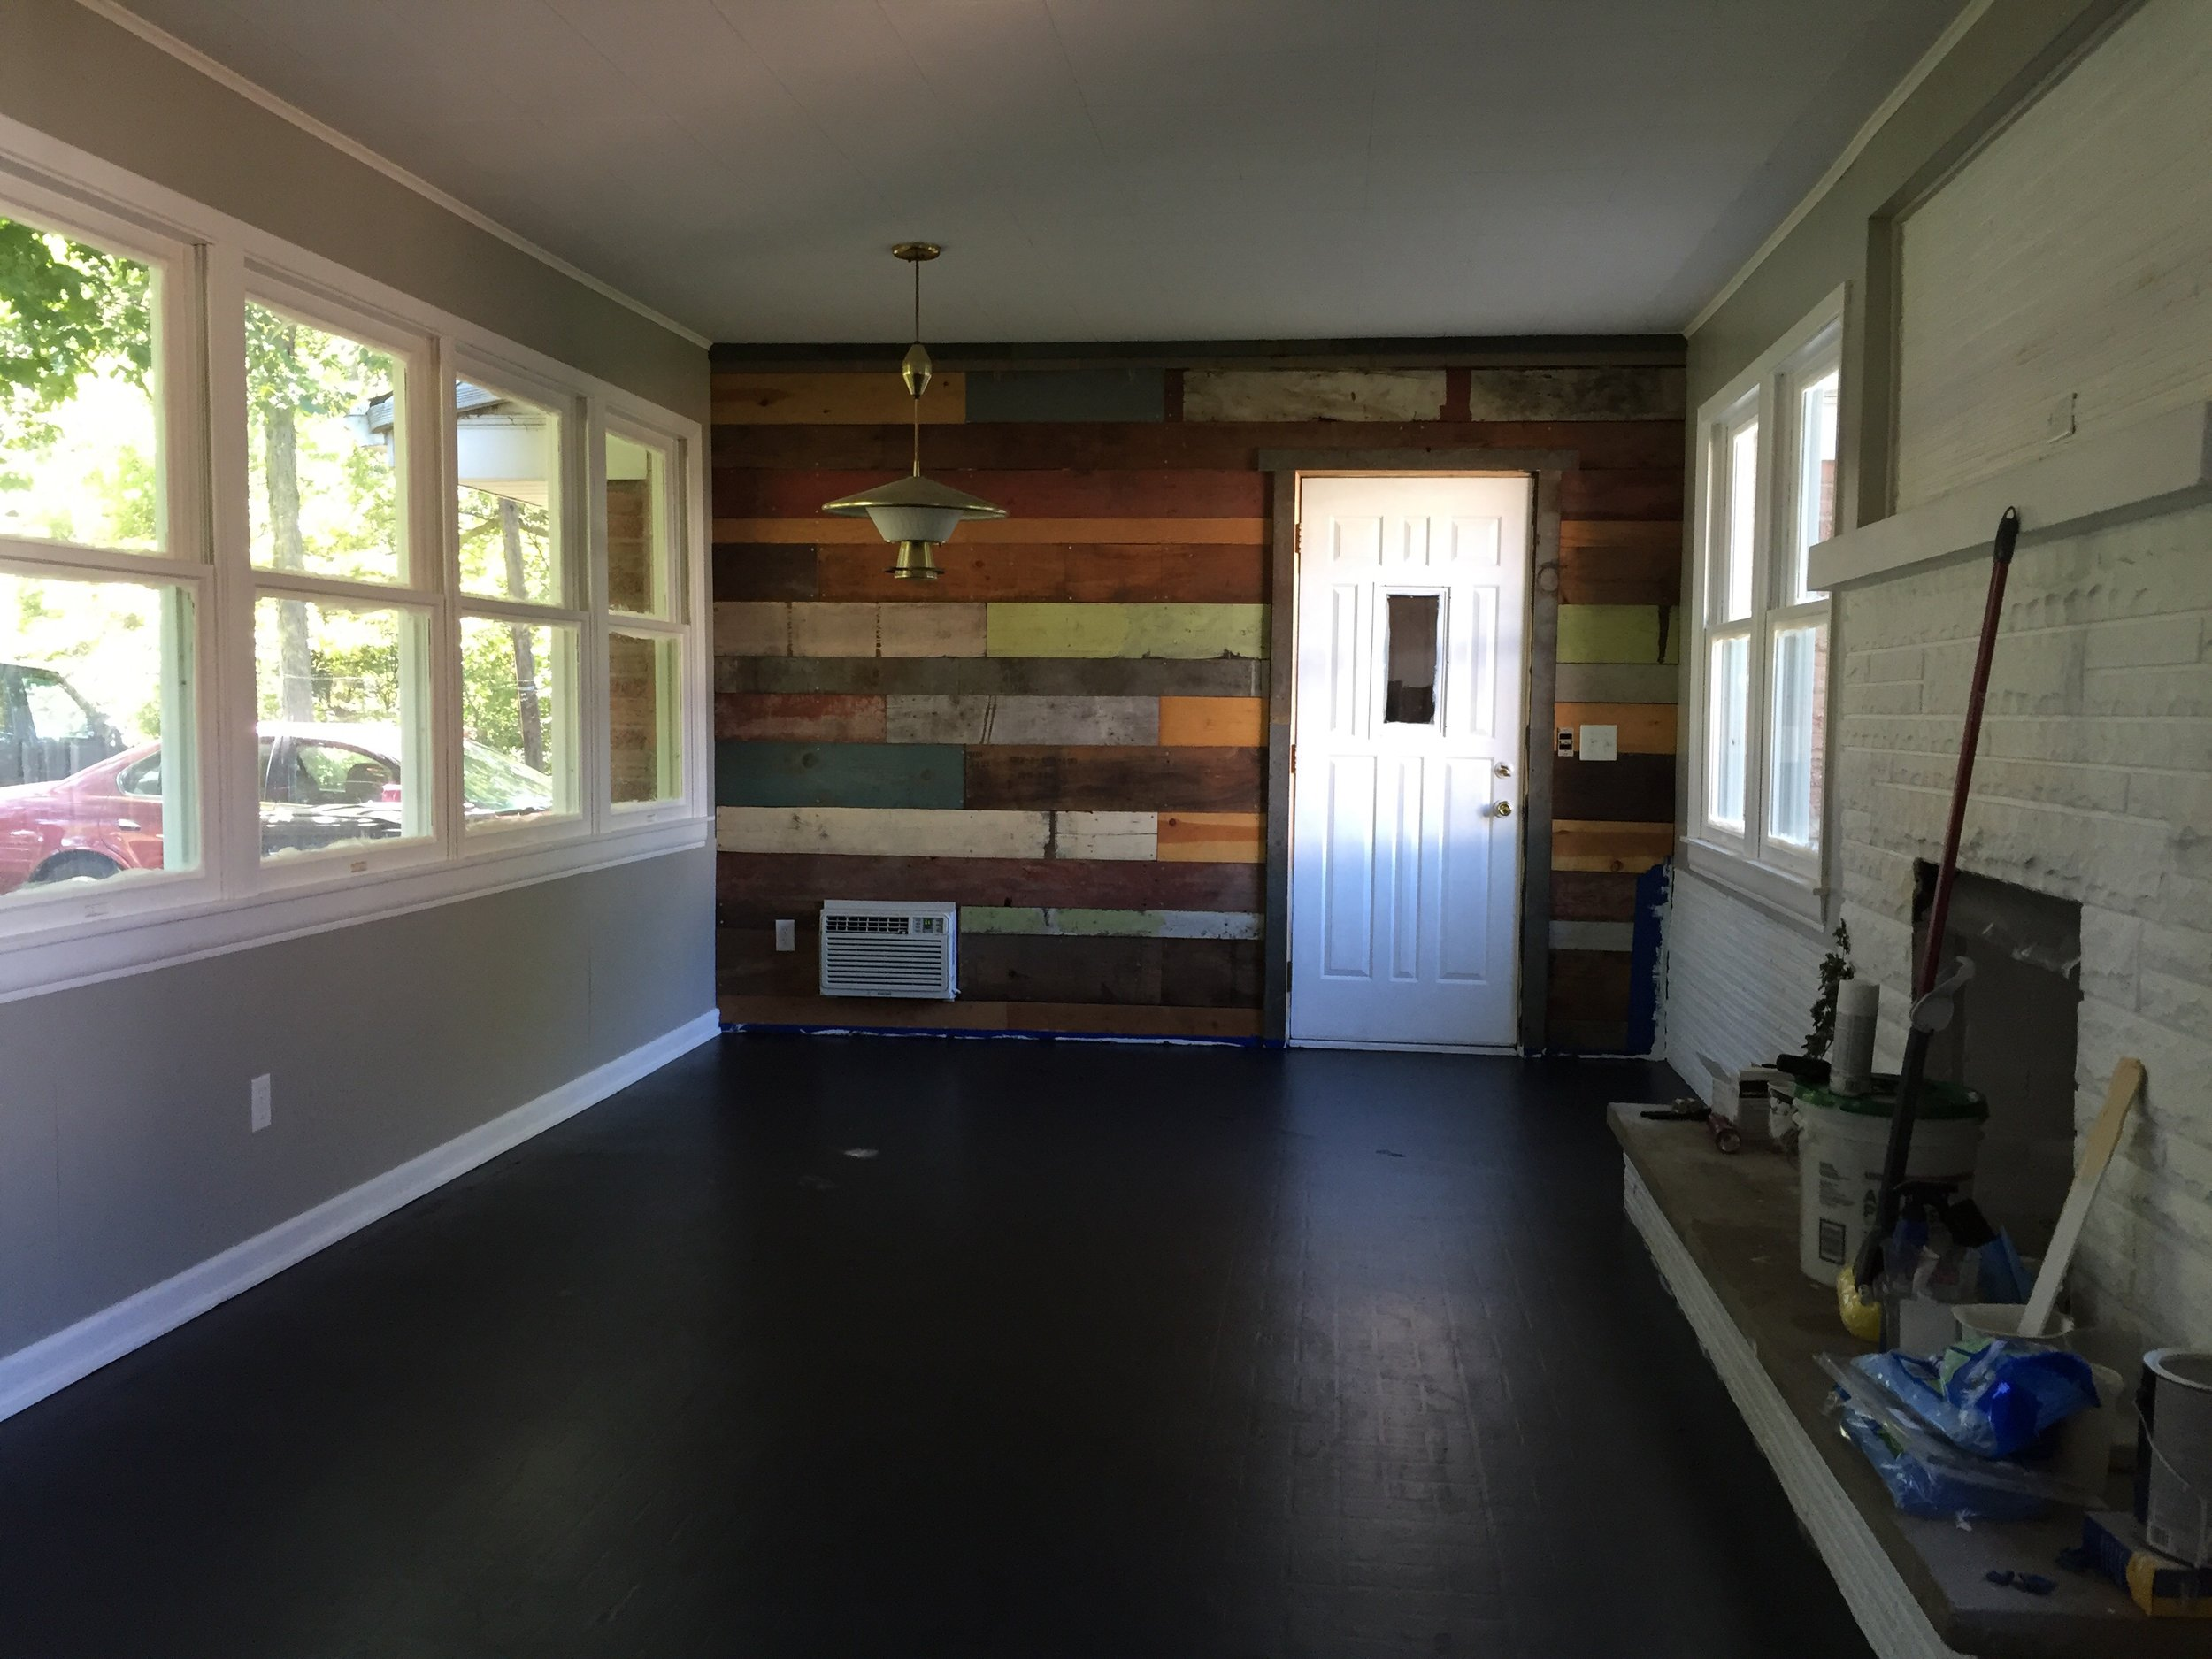 And the breezeway is done, at least until the chimney gets fixed. Now just waiting for the floor to dry!